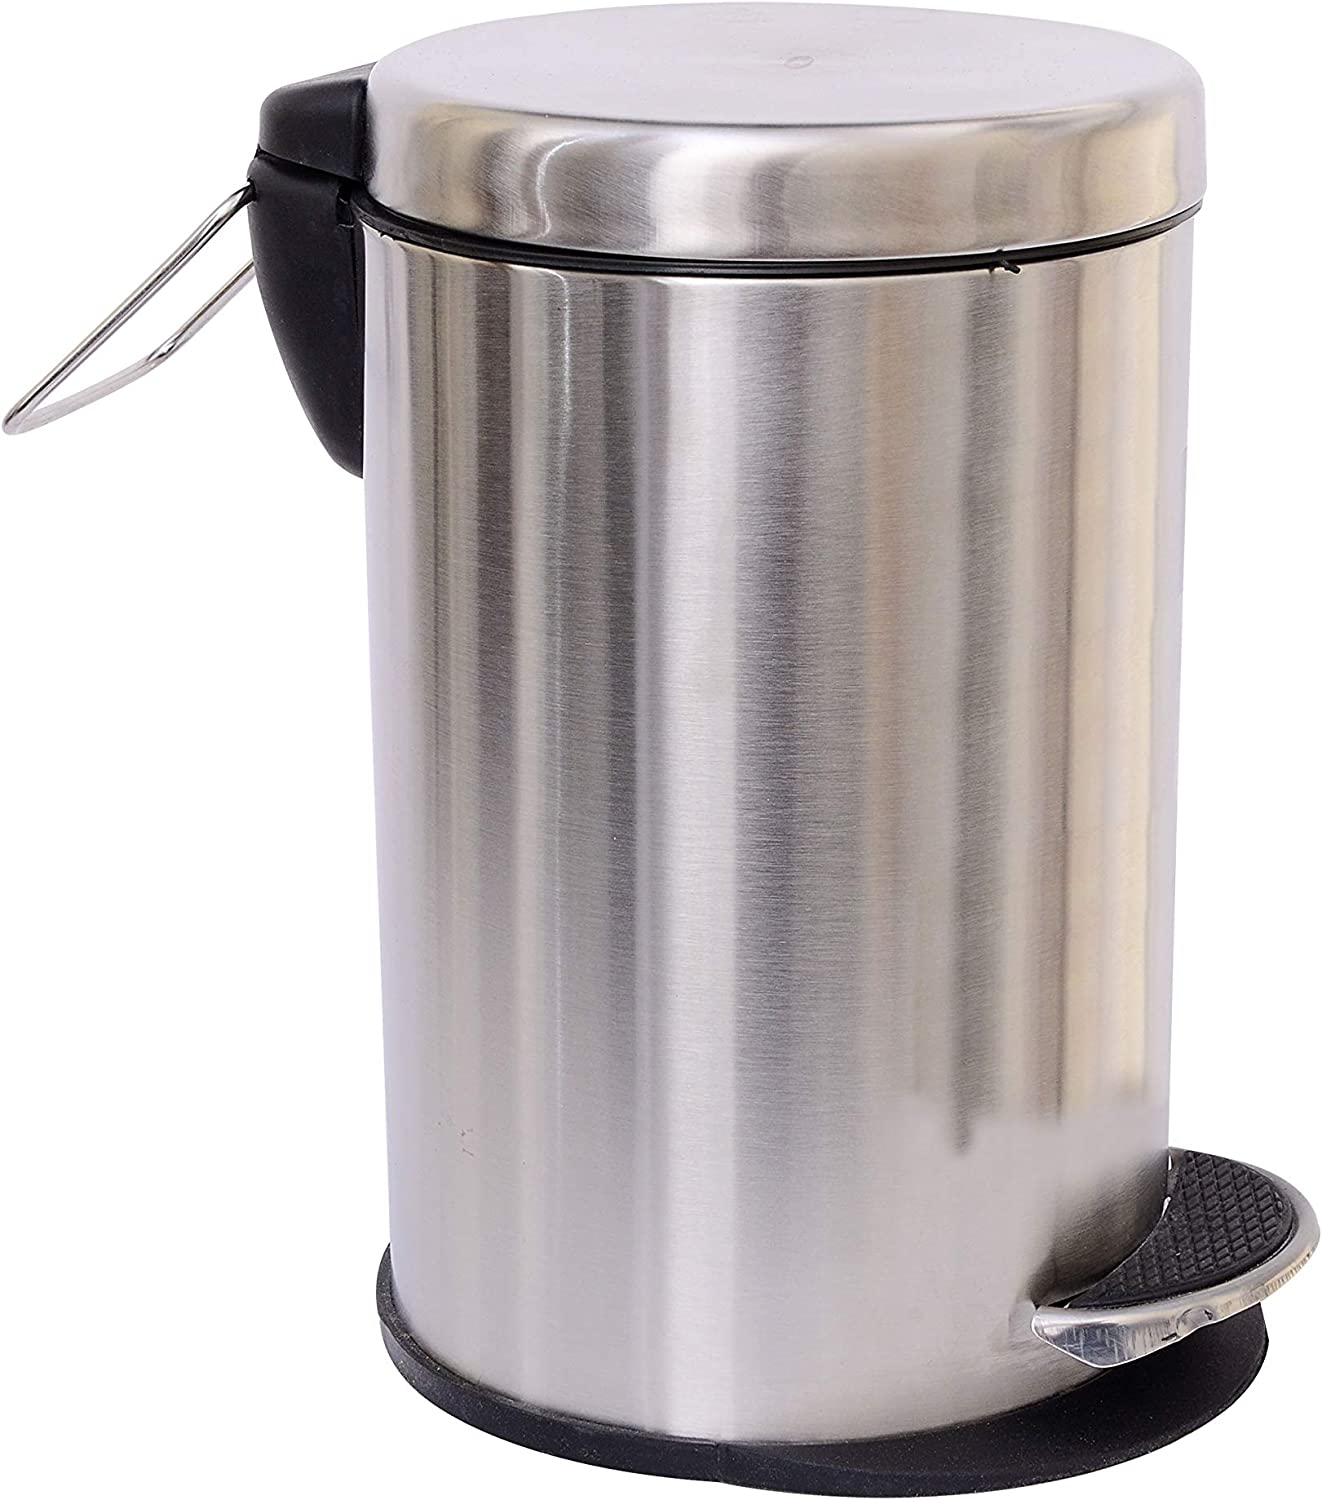 Shapes Stainless Steel Plain Pedal Garbage Bin with Lid and Plastic Bucket for Home, Kitchen, Bathroom and Office - Round Brushed Stainless Steel Dustbin, 1.25 Gallon, Silver, Odor Control Trash Can